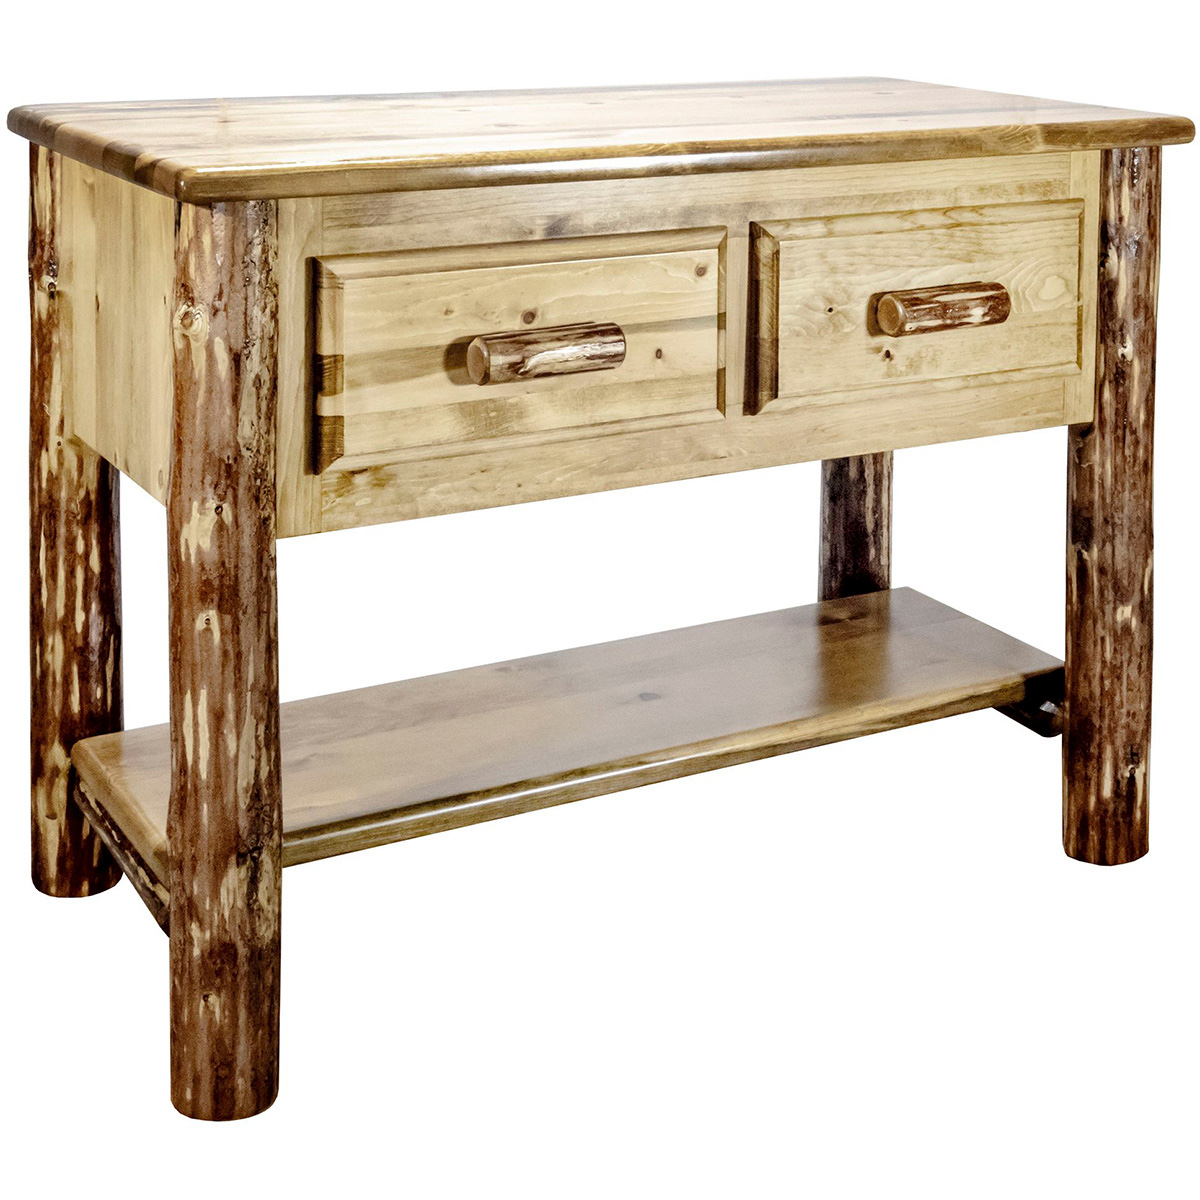 Woodsman Console Table with 2 Drawers